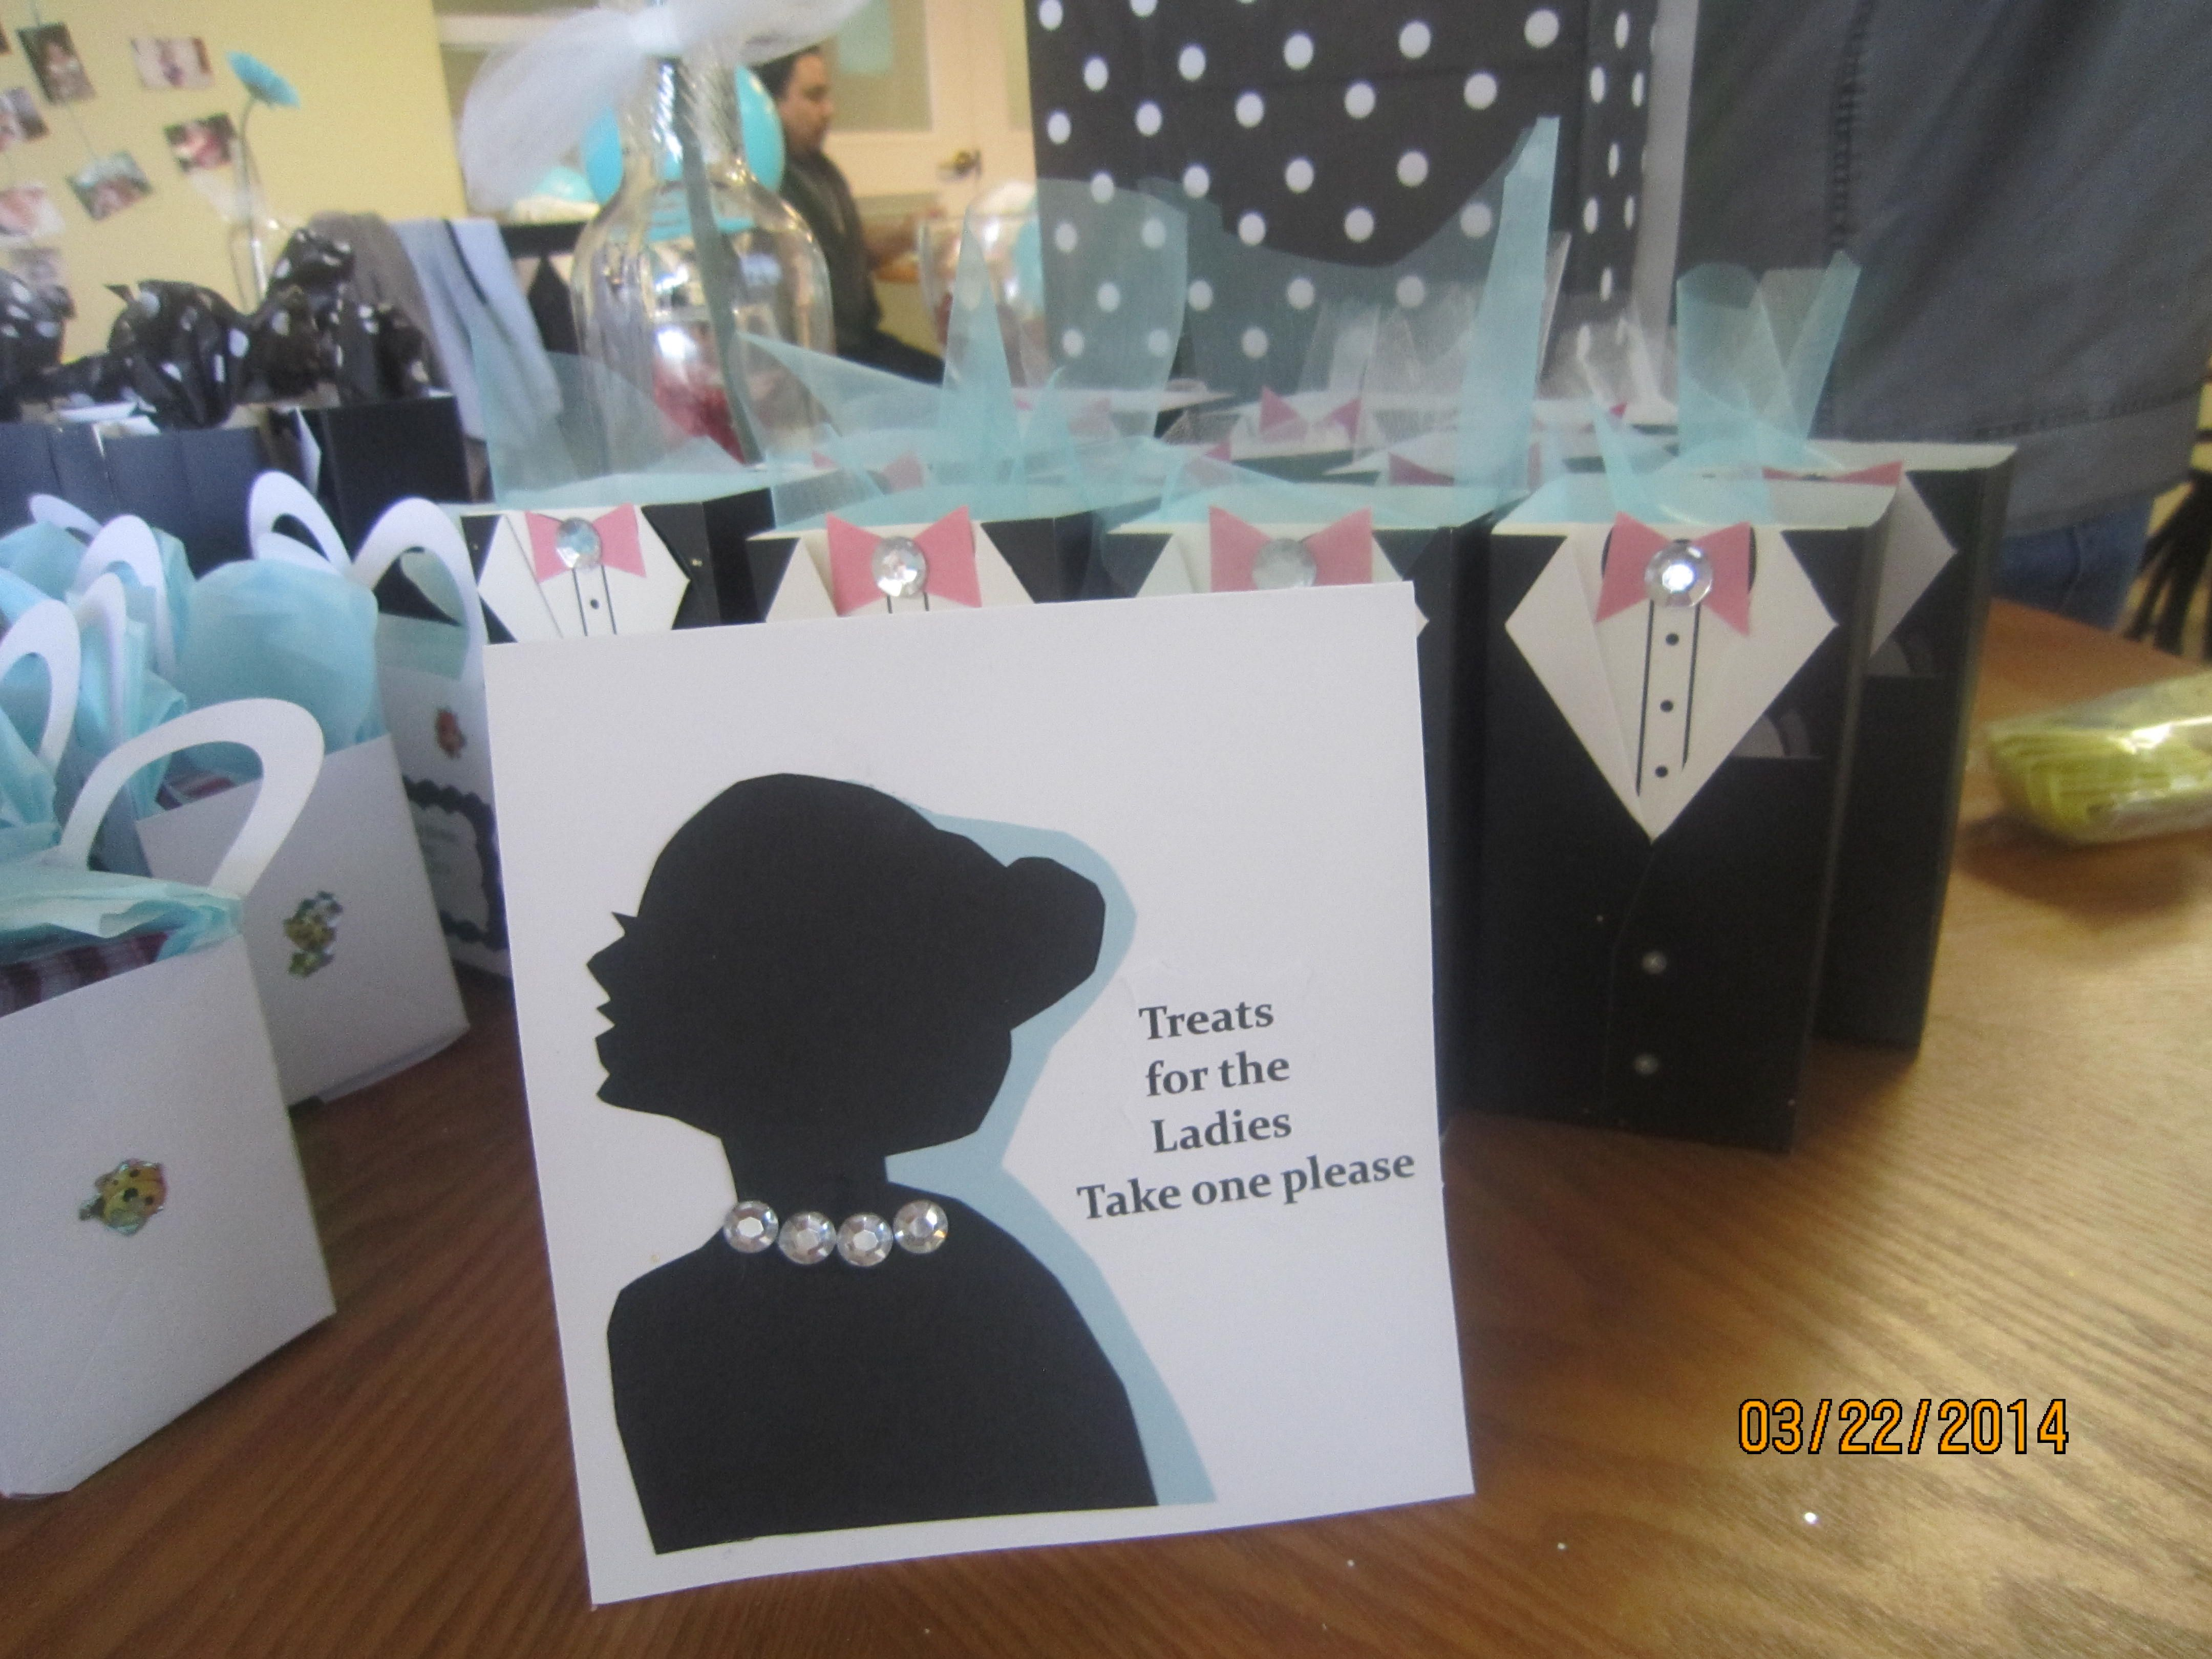 Party Favors For The Ladies Dollar Store Wedding Favor Boxes With Pink Bow Ties A Gem Glued Over Black Tie I Traced Lady From Pc And